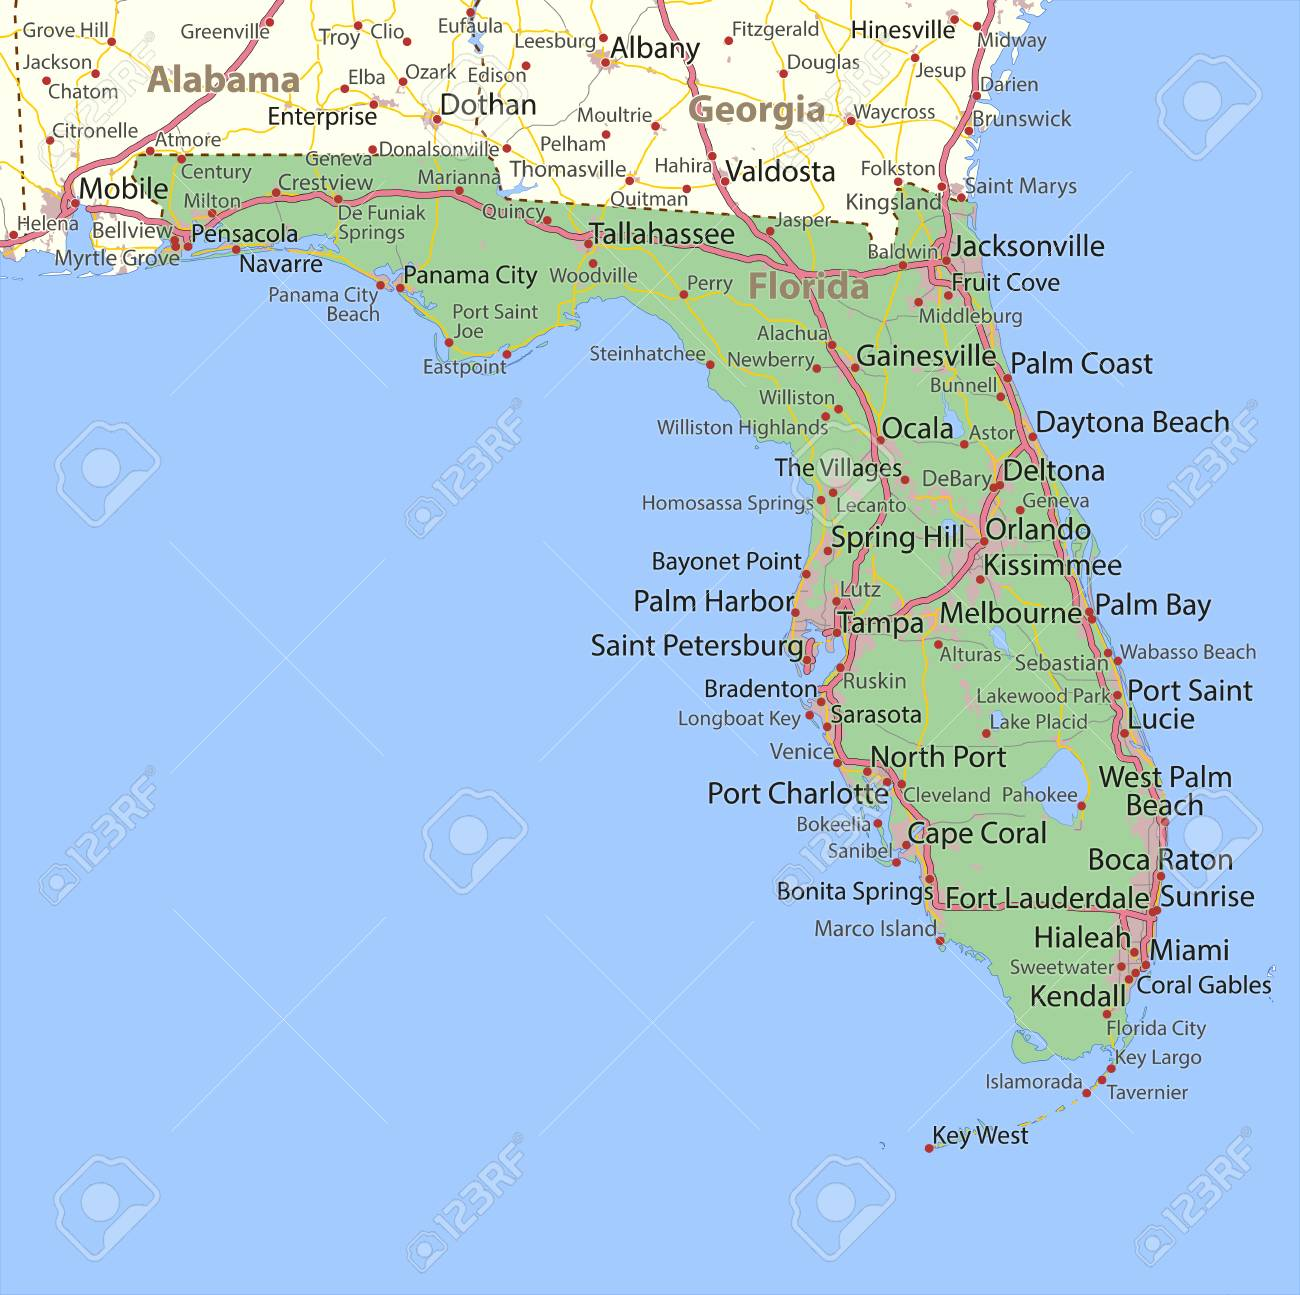 Map Of Florida Roads.Map Of Florida Shows State Borders Urban Areas Place Names